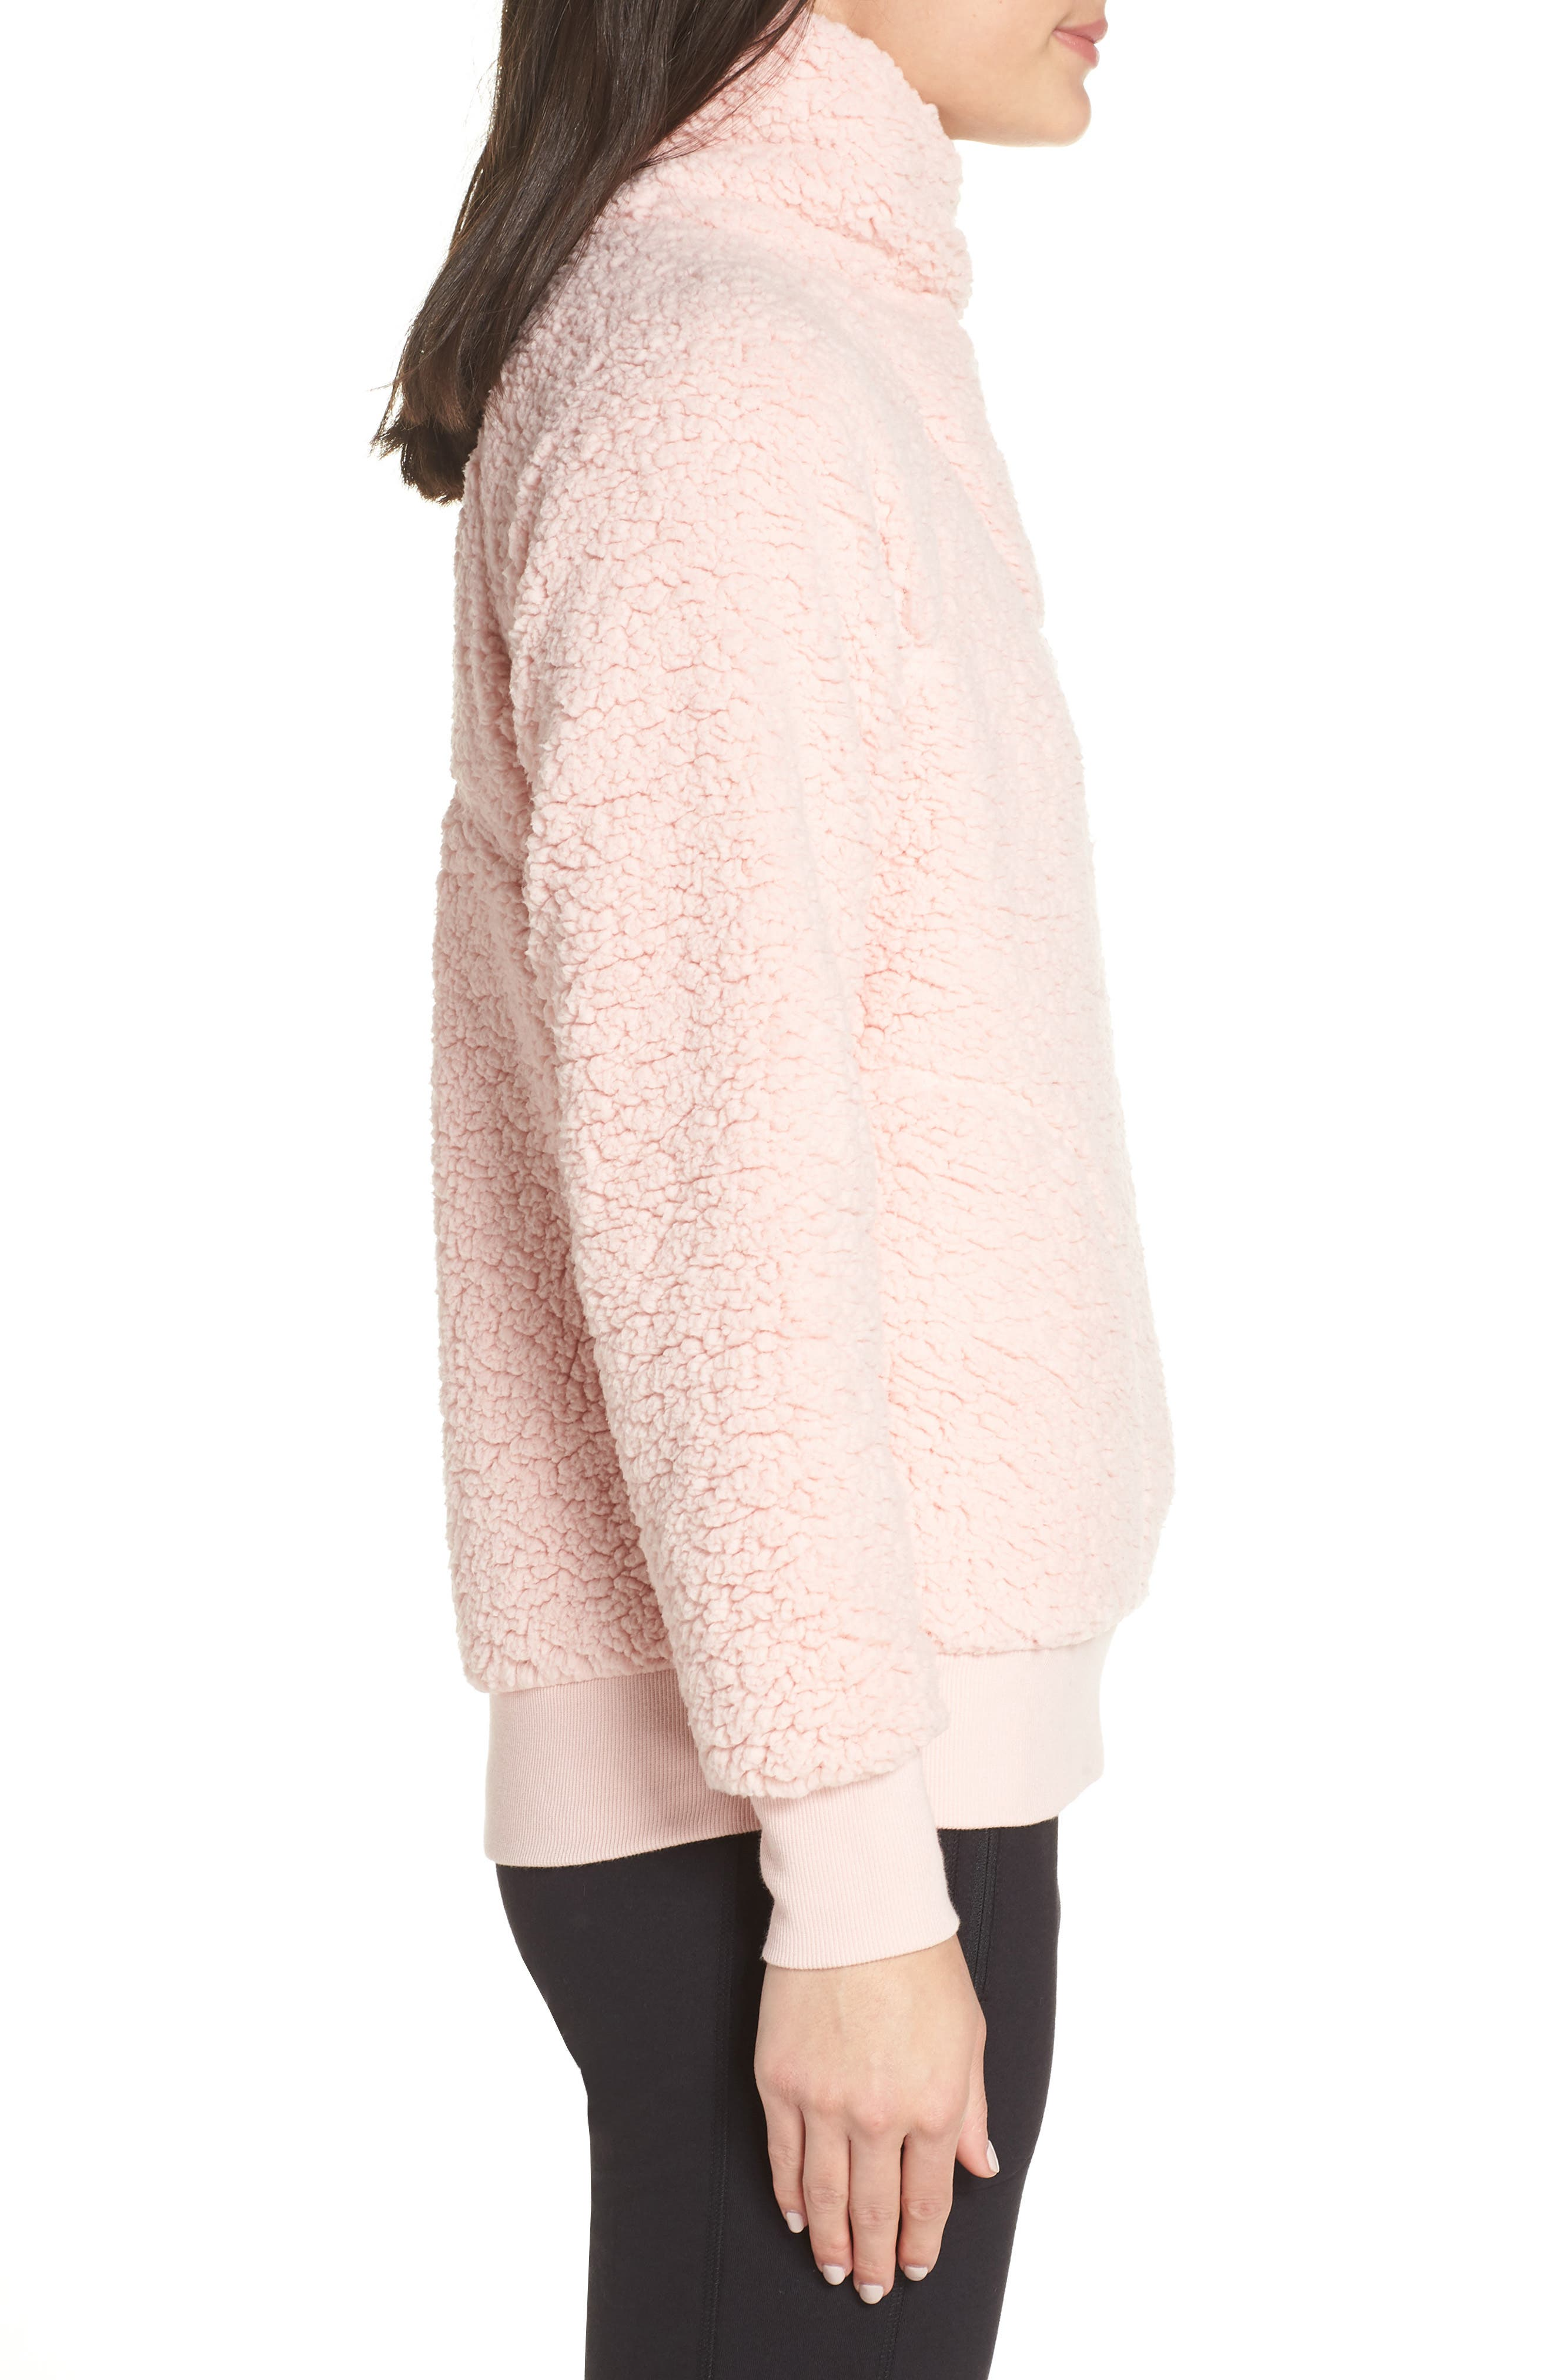 Shear Up Pullover,                             Alternate thumbnail 3, color,                             PINK PEACHSKIN